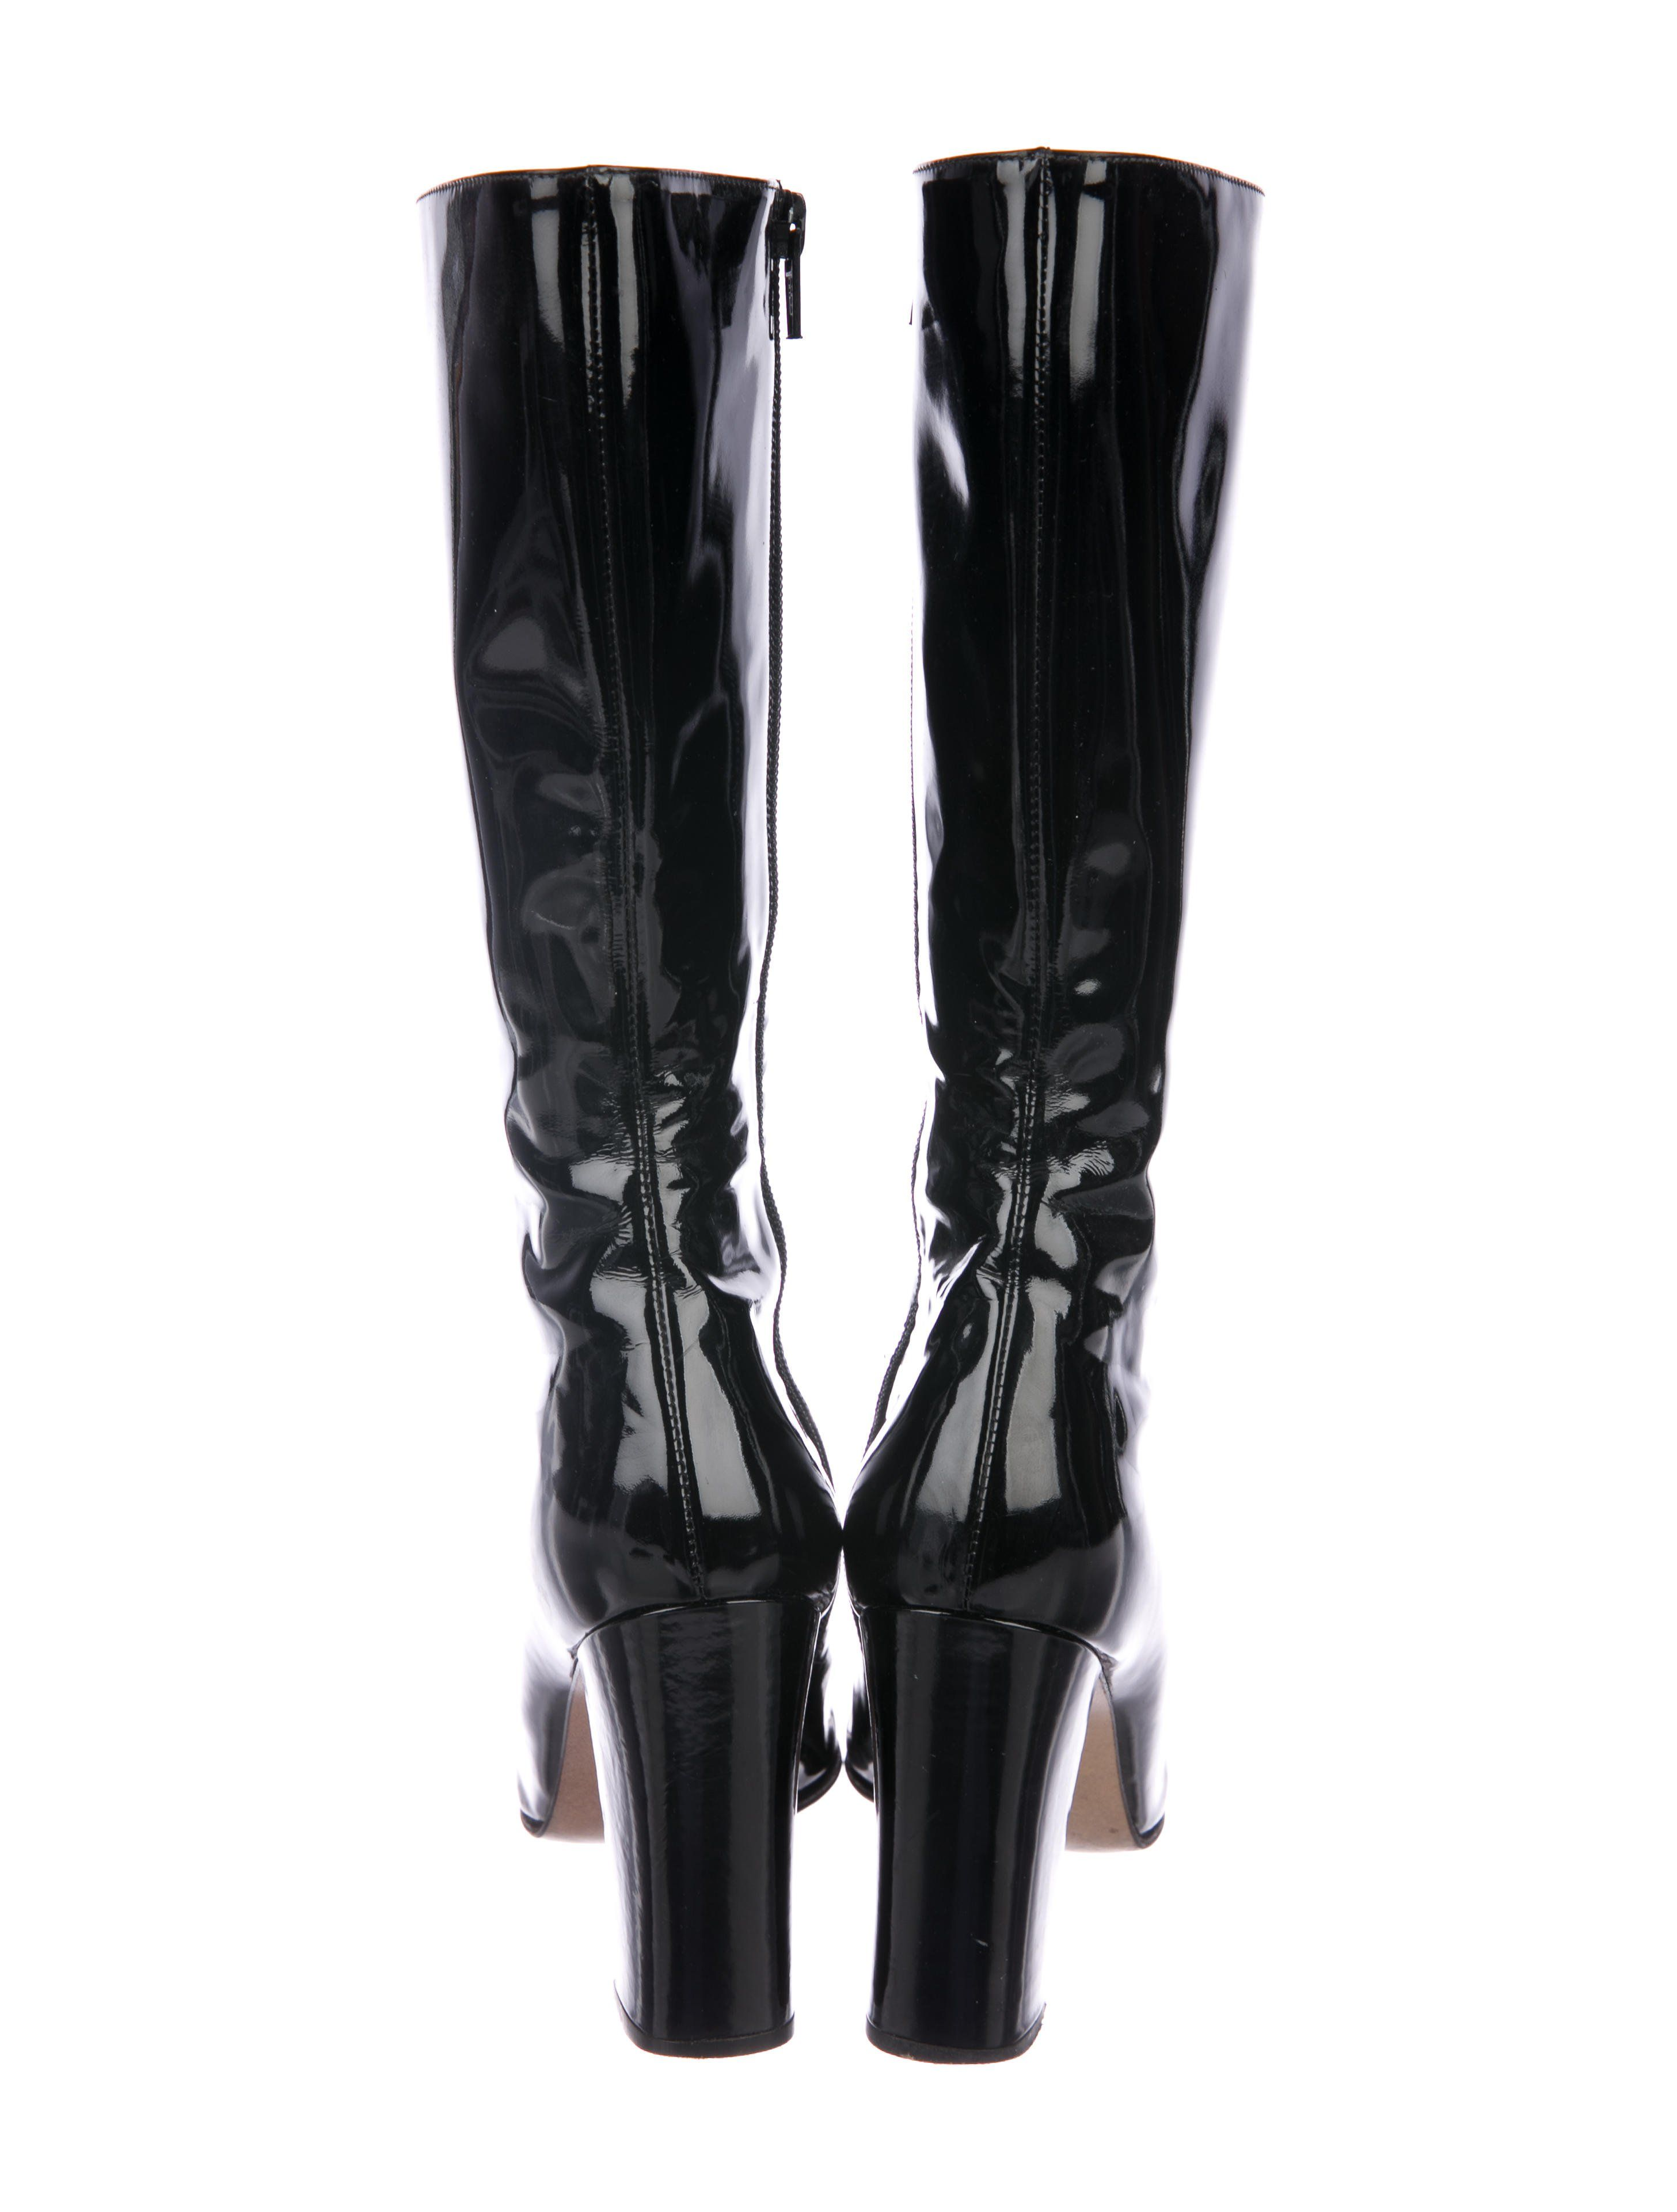 c006c670b Black patent leather Gucci mid-calf boots with silver-tone horsebit  embellishments at vamps, covered heels and zipper closures at insteps.